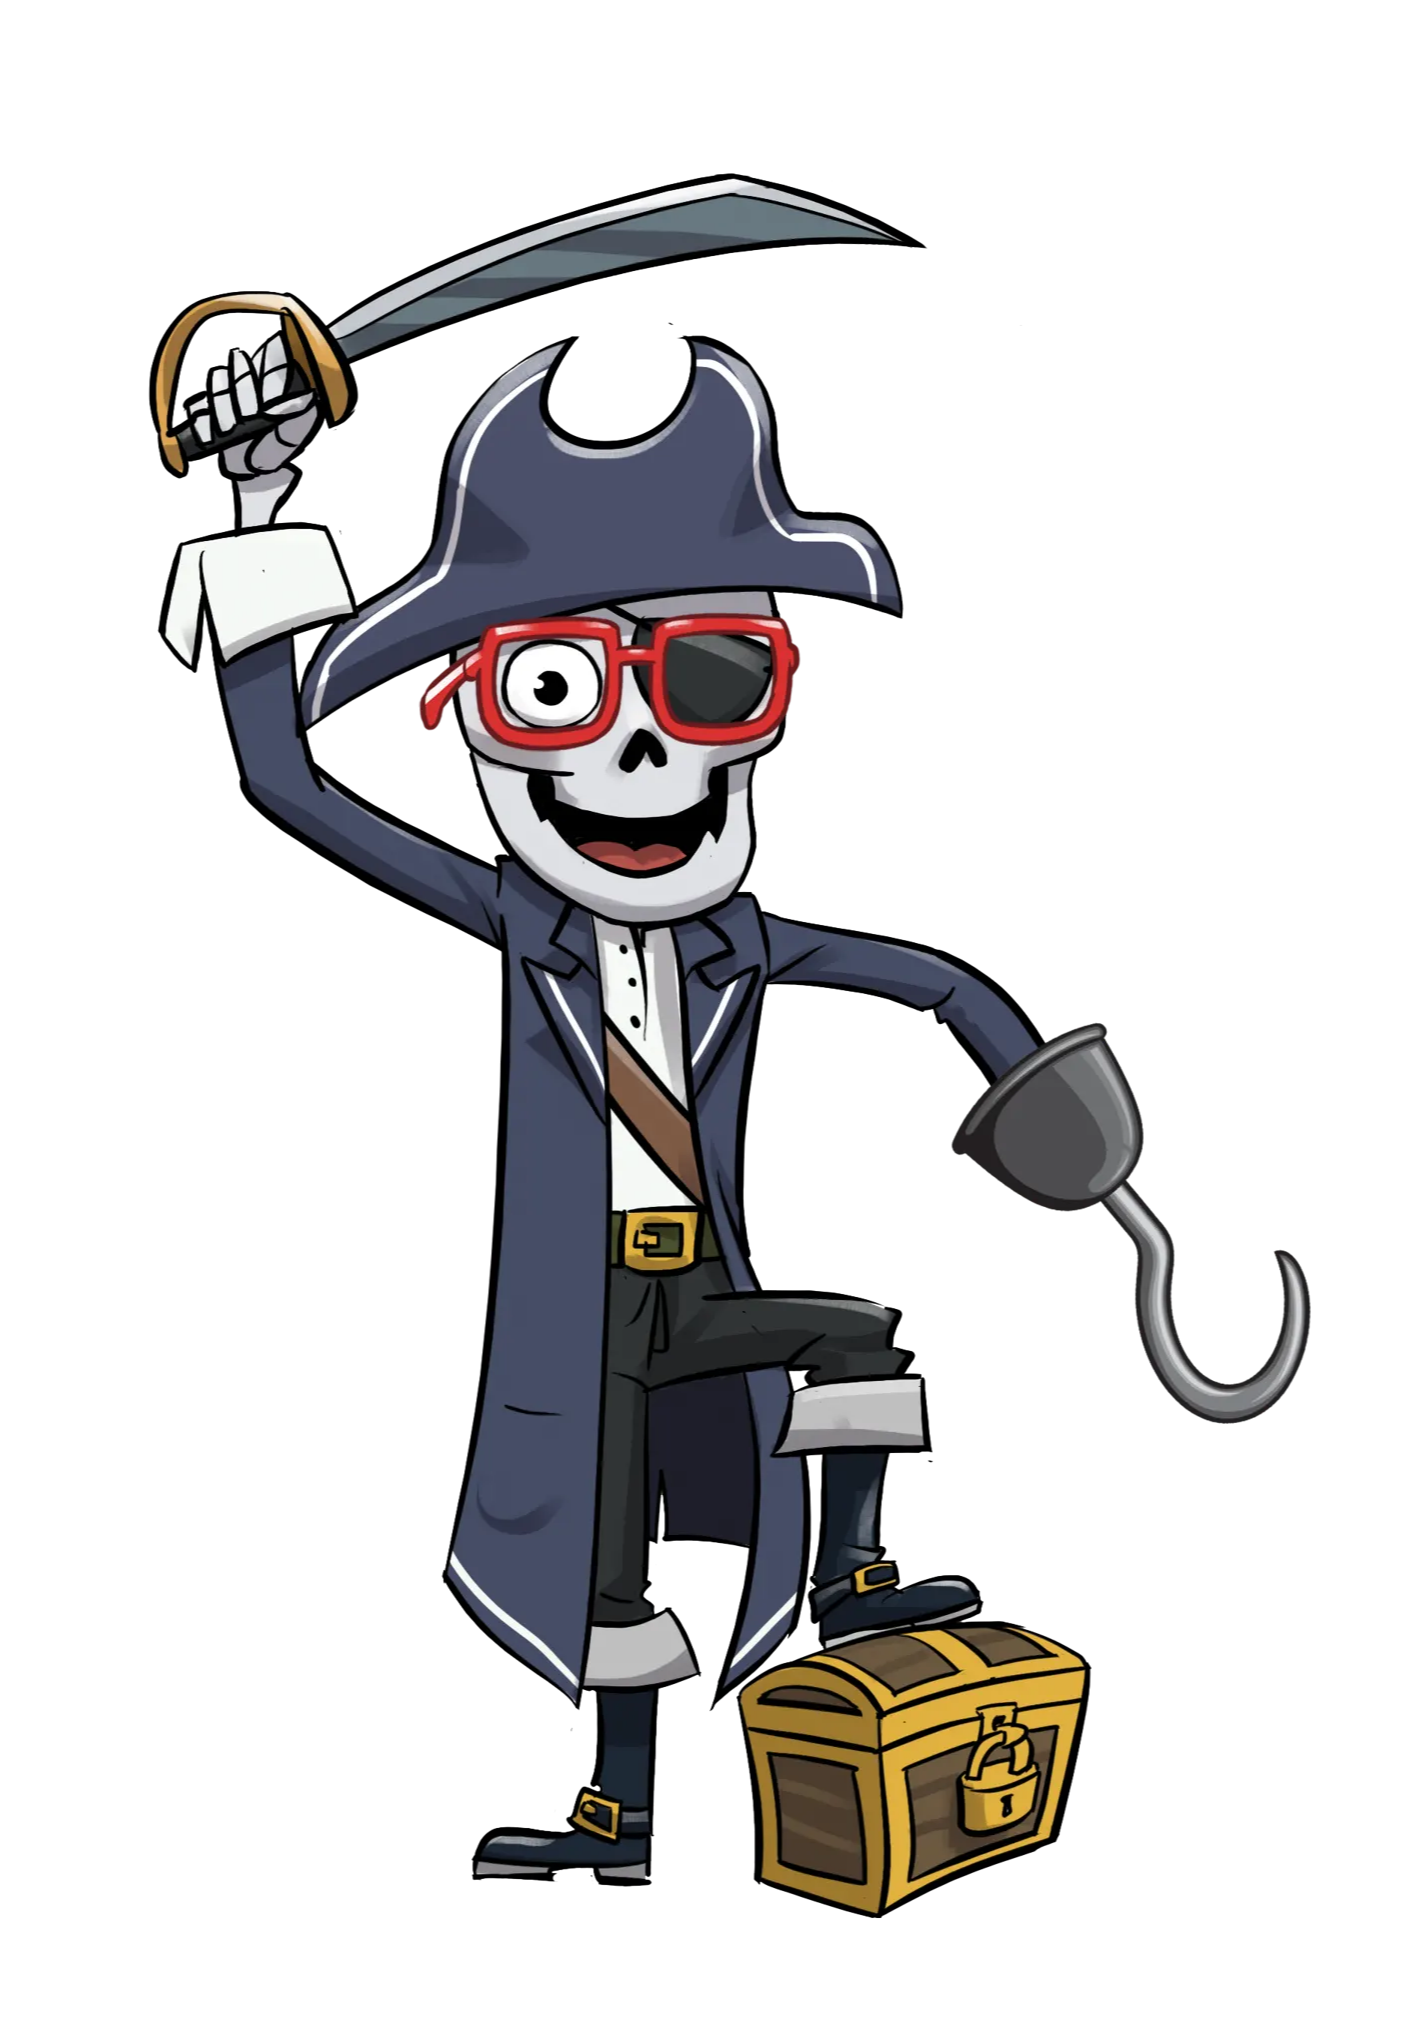 Ask Dr. Bonyfide the Pirate Captain